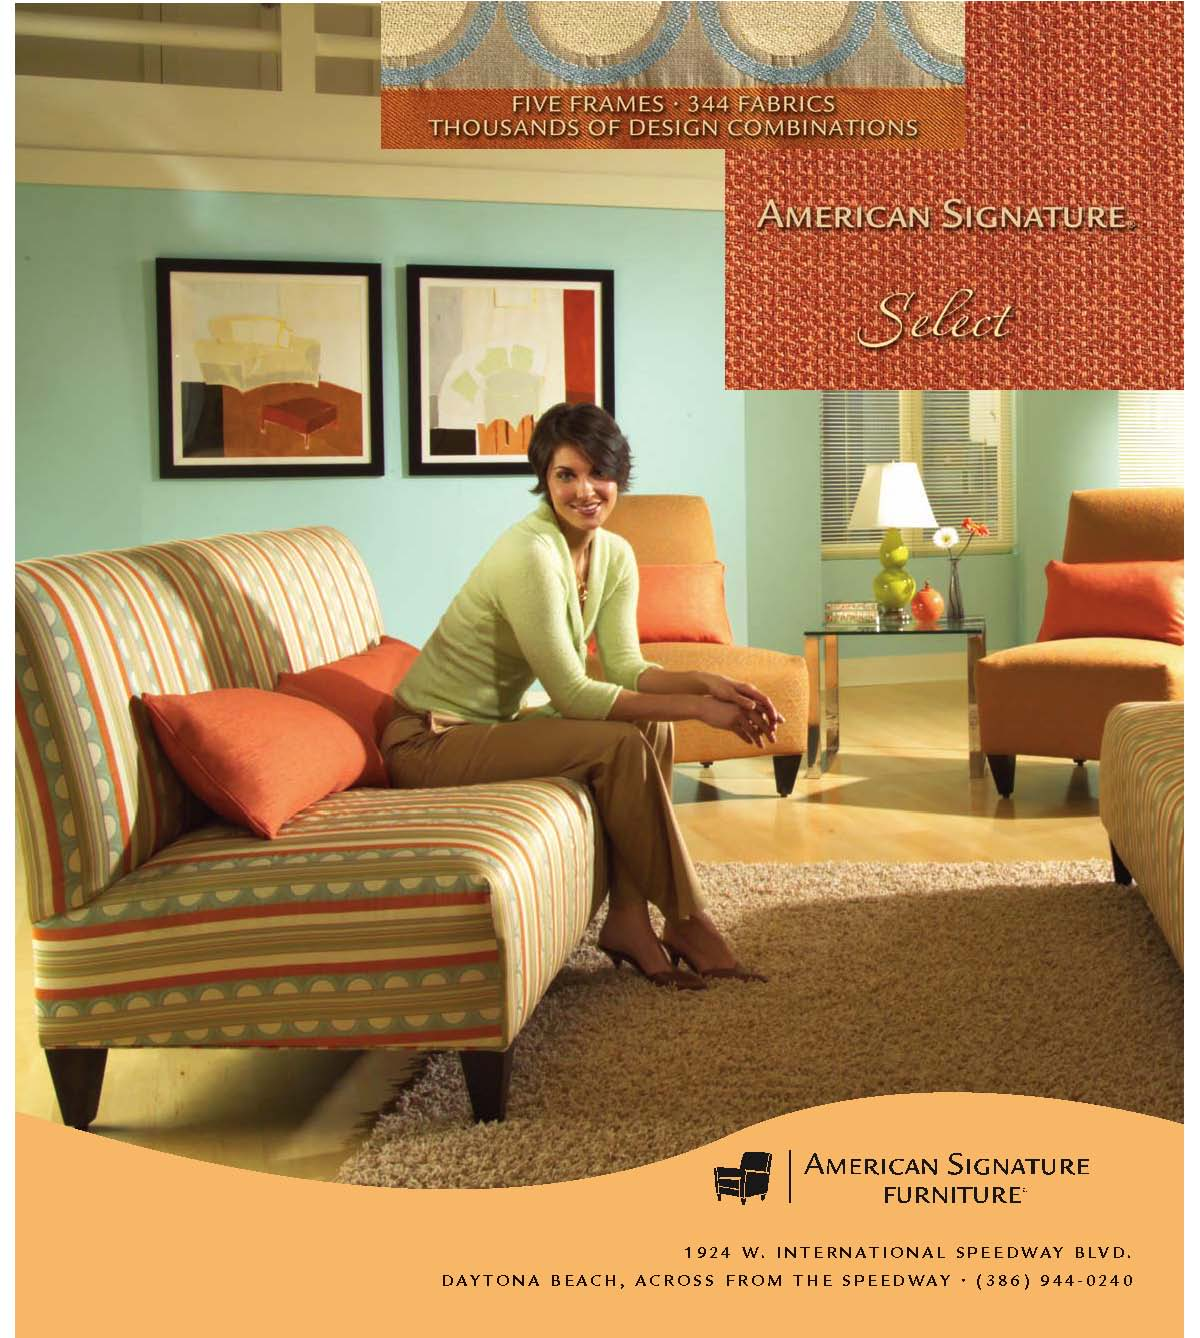 Furniture Store Ads: American Signature / Value City Furniture